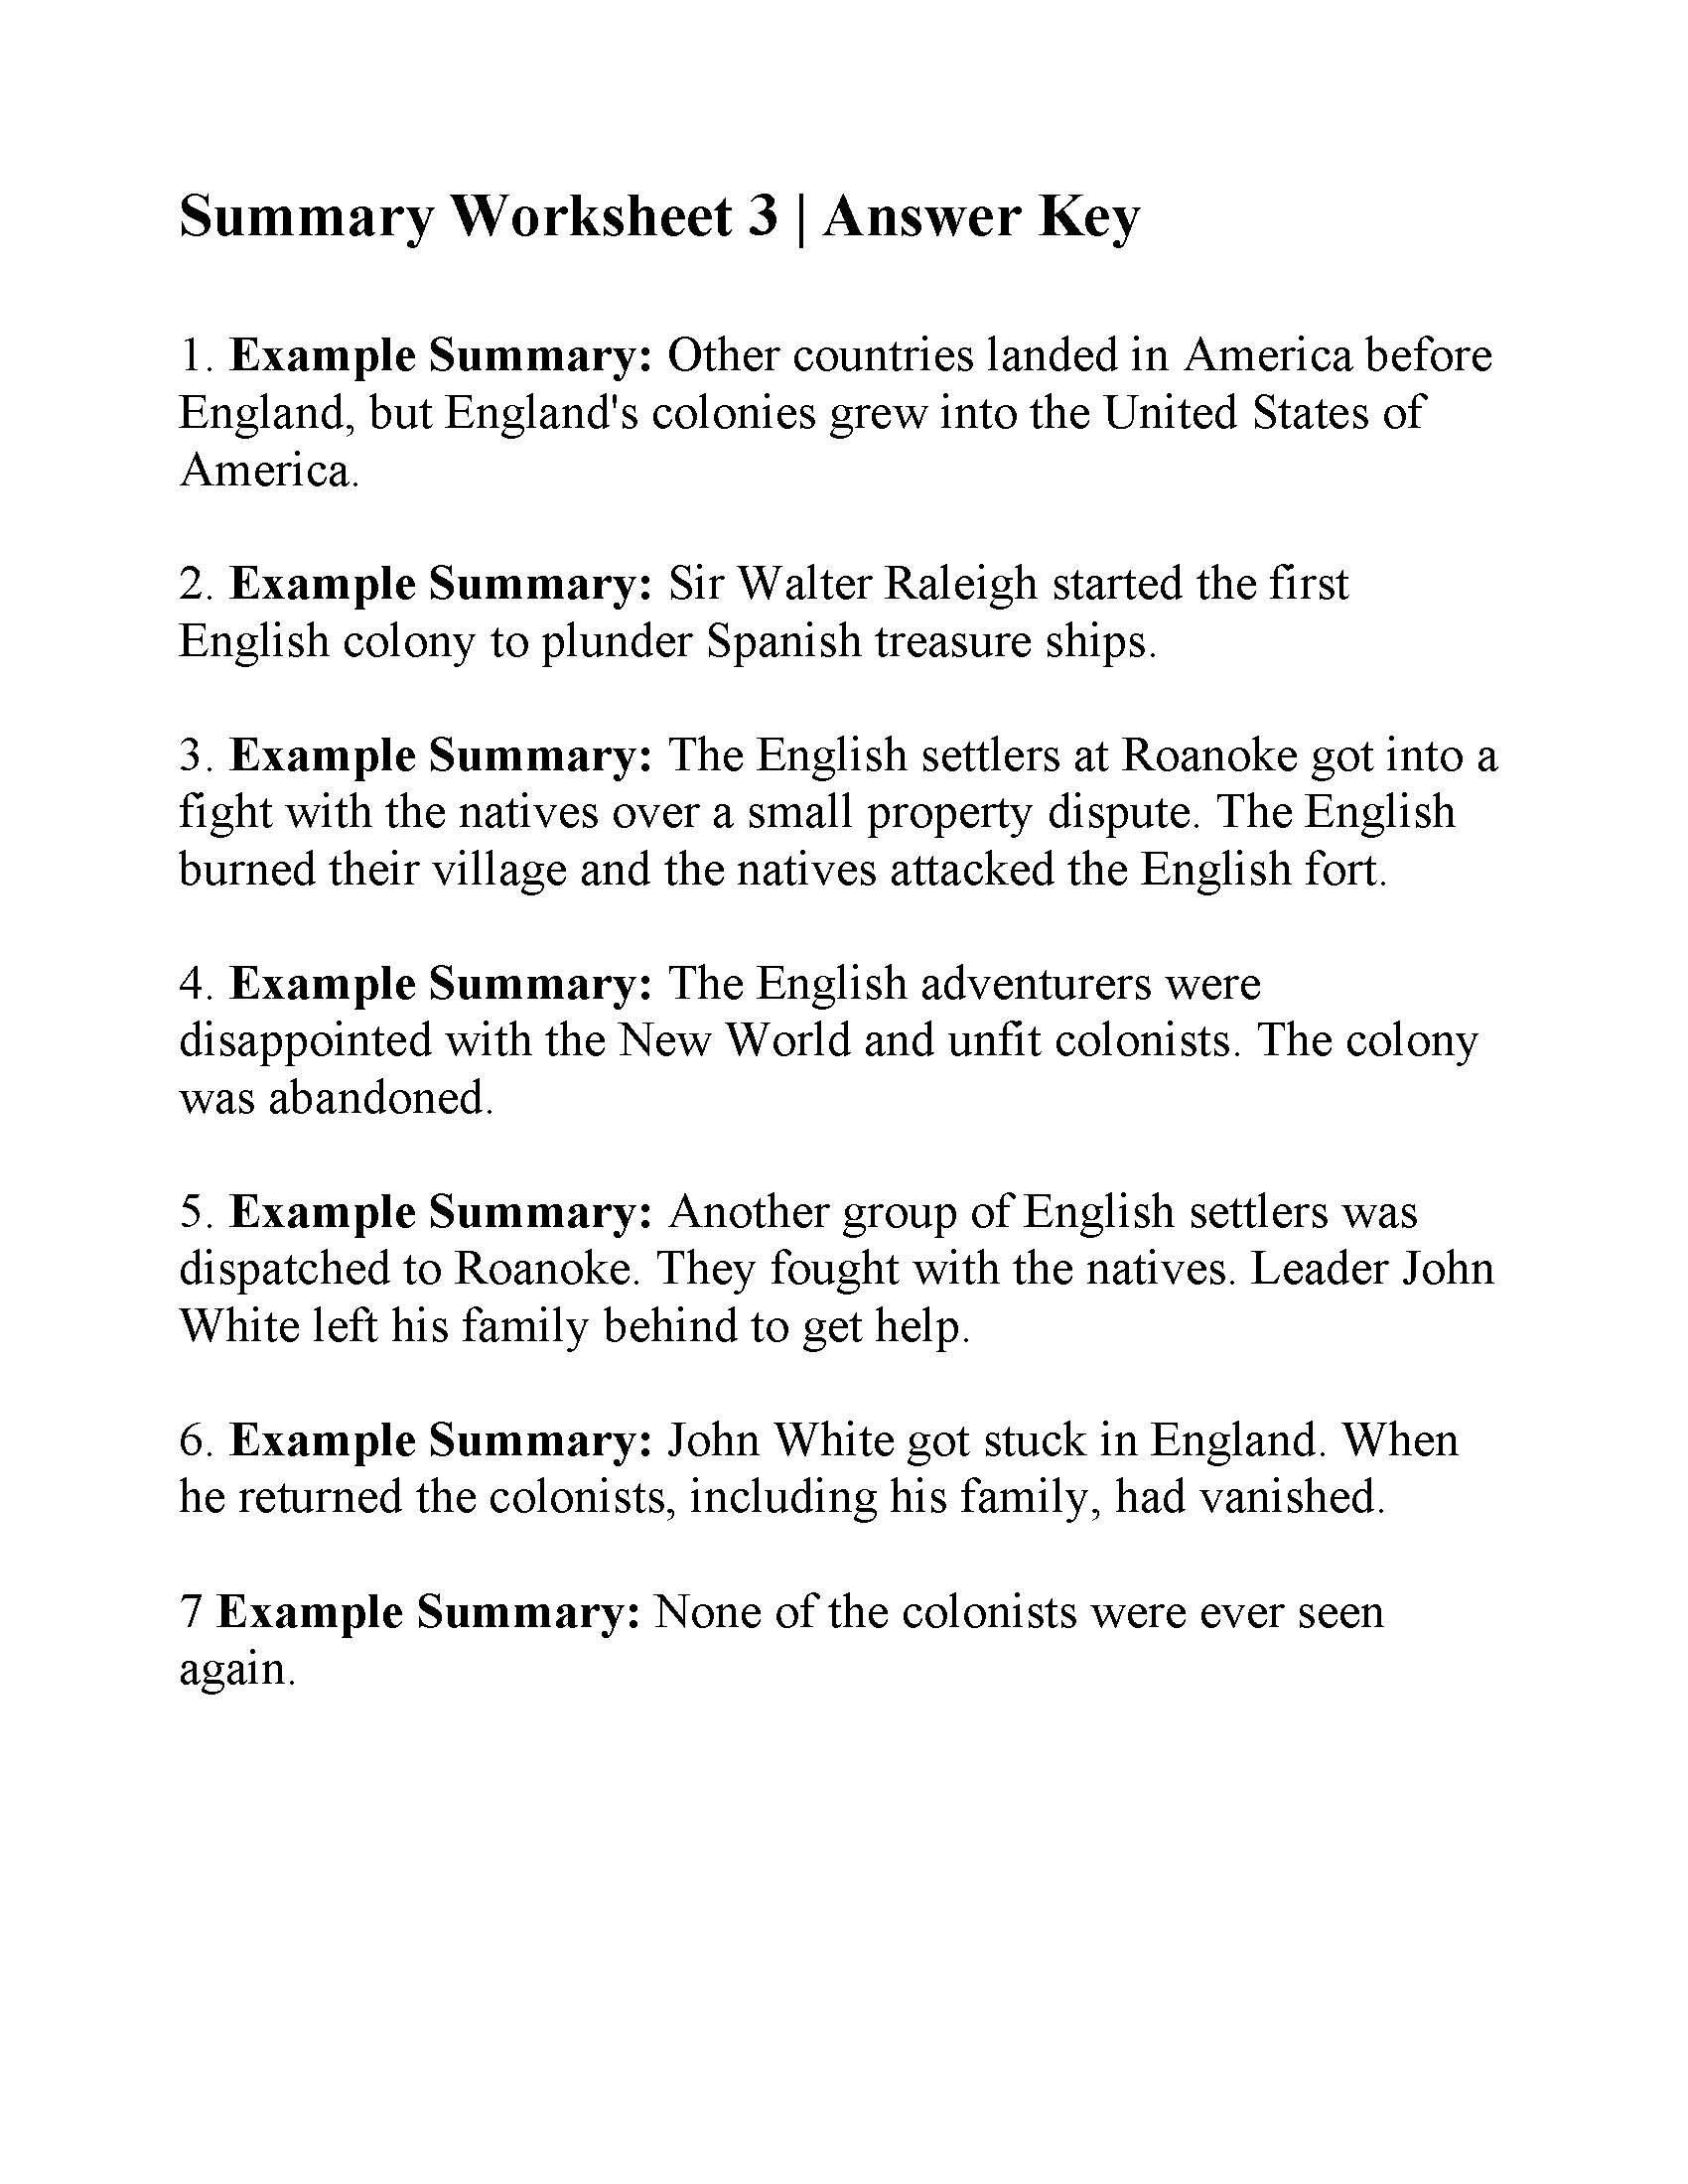 Main Idea and Summary Worksheets This is the Answer Key for the Summary Worksheet 3